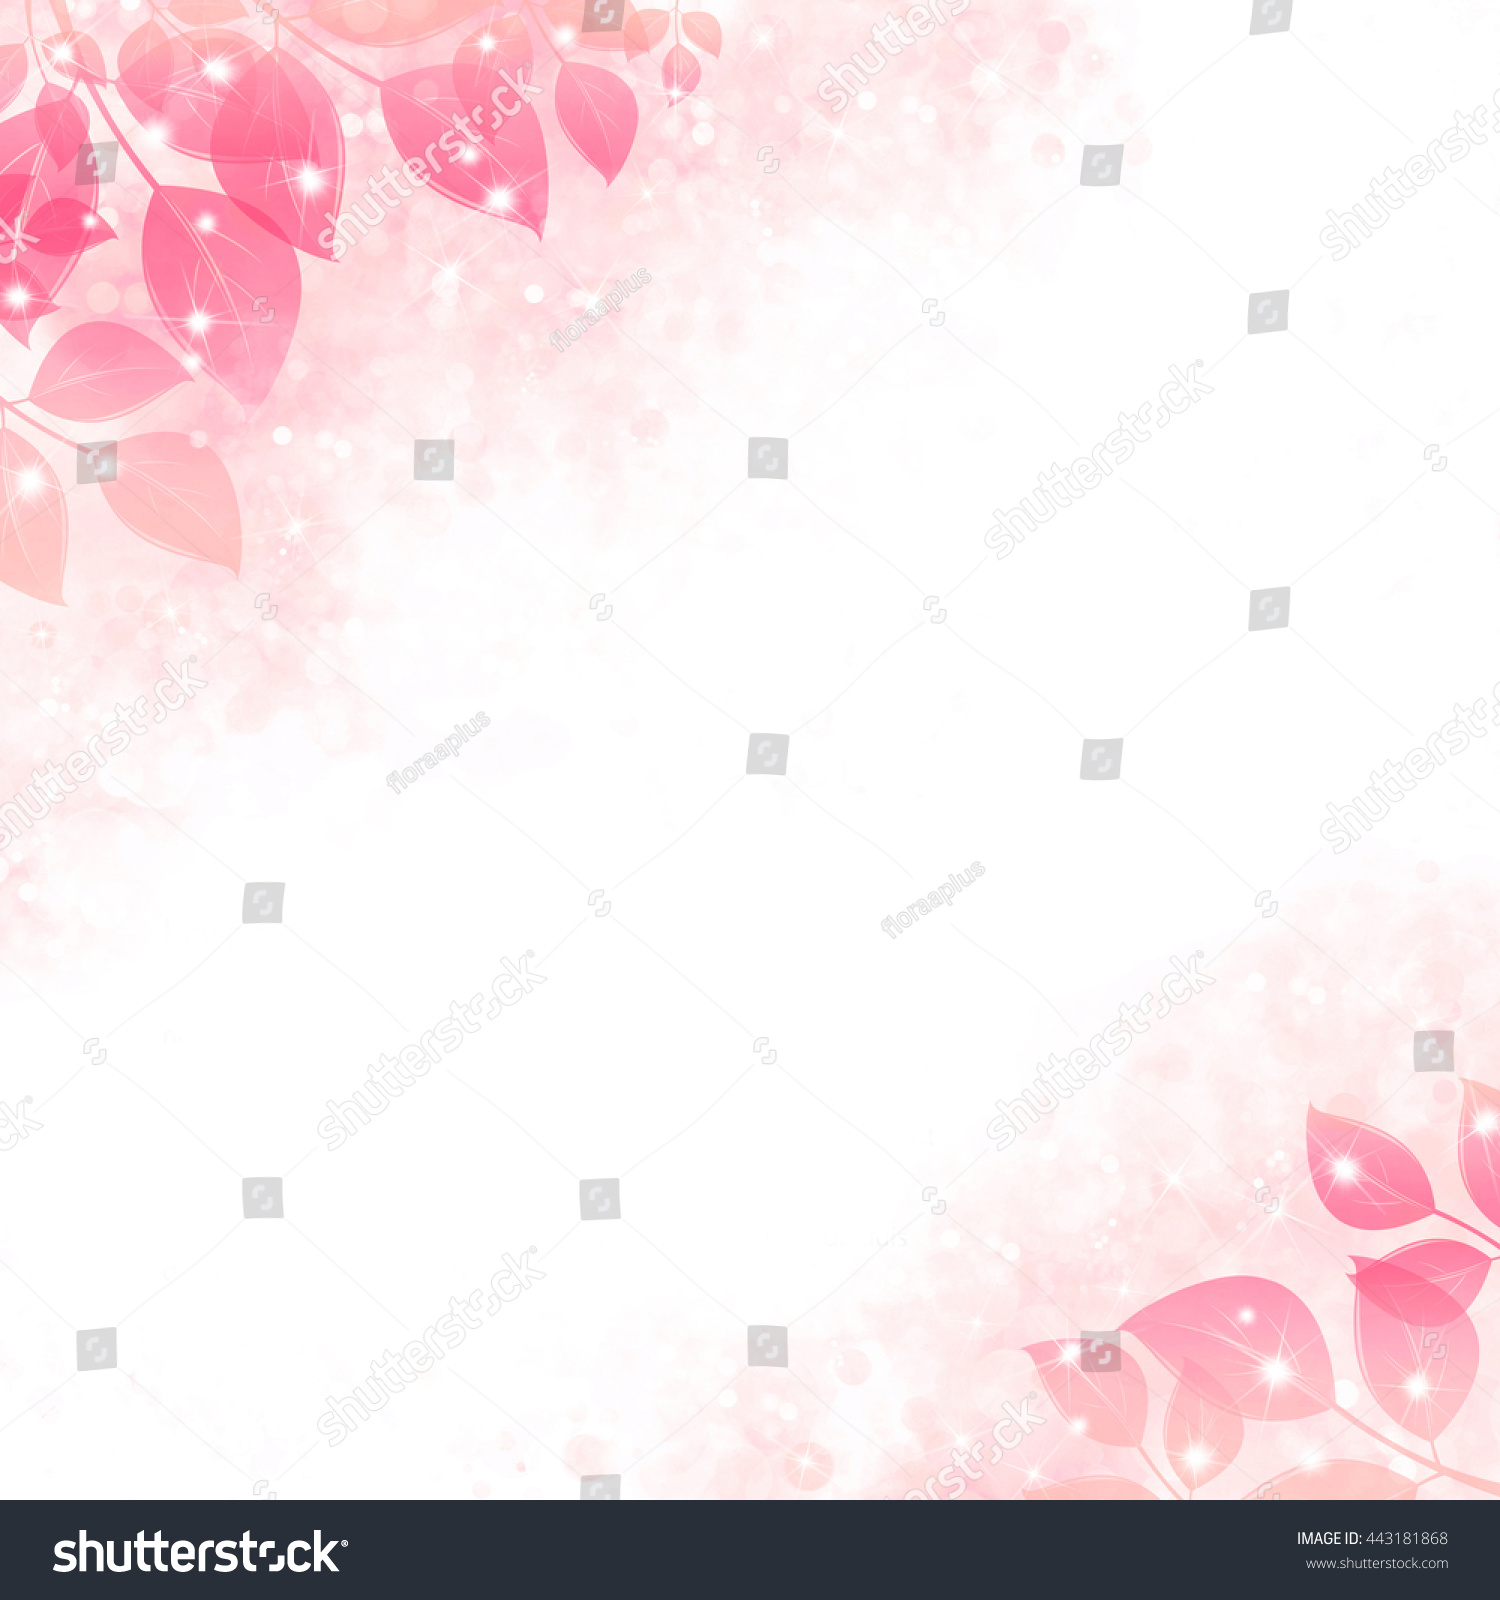 stock-photo-gentle-background-with-the-s